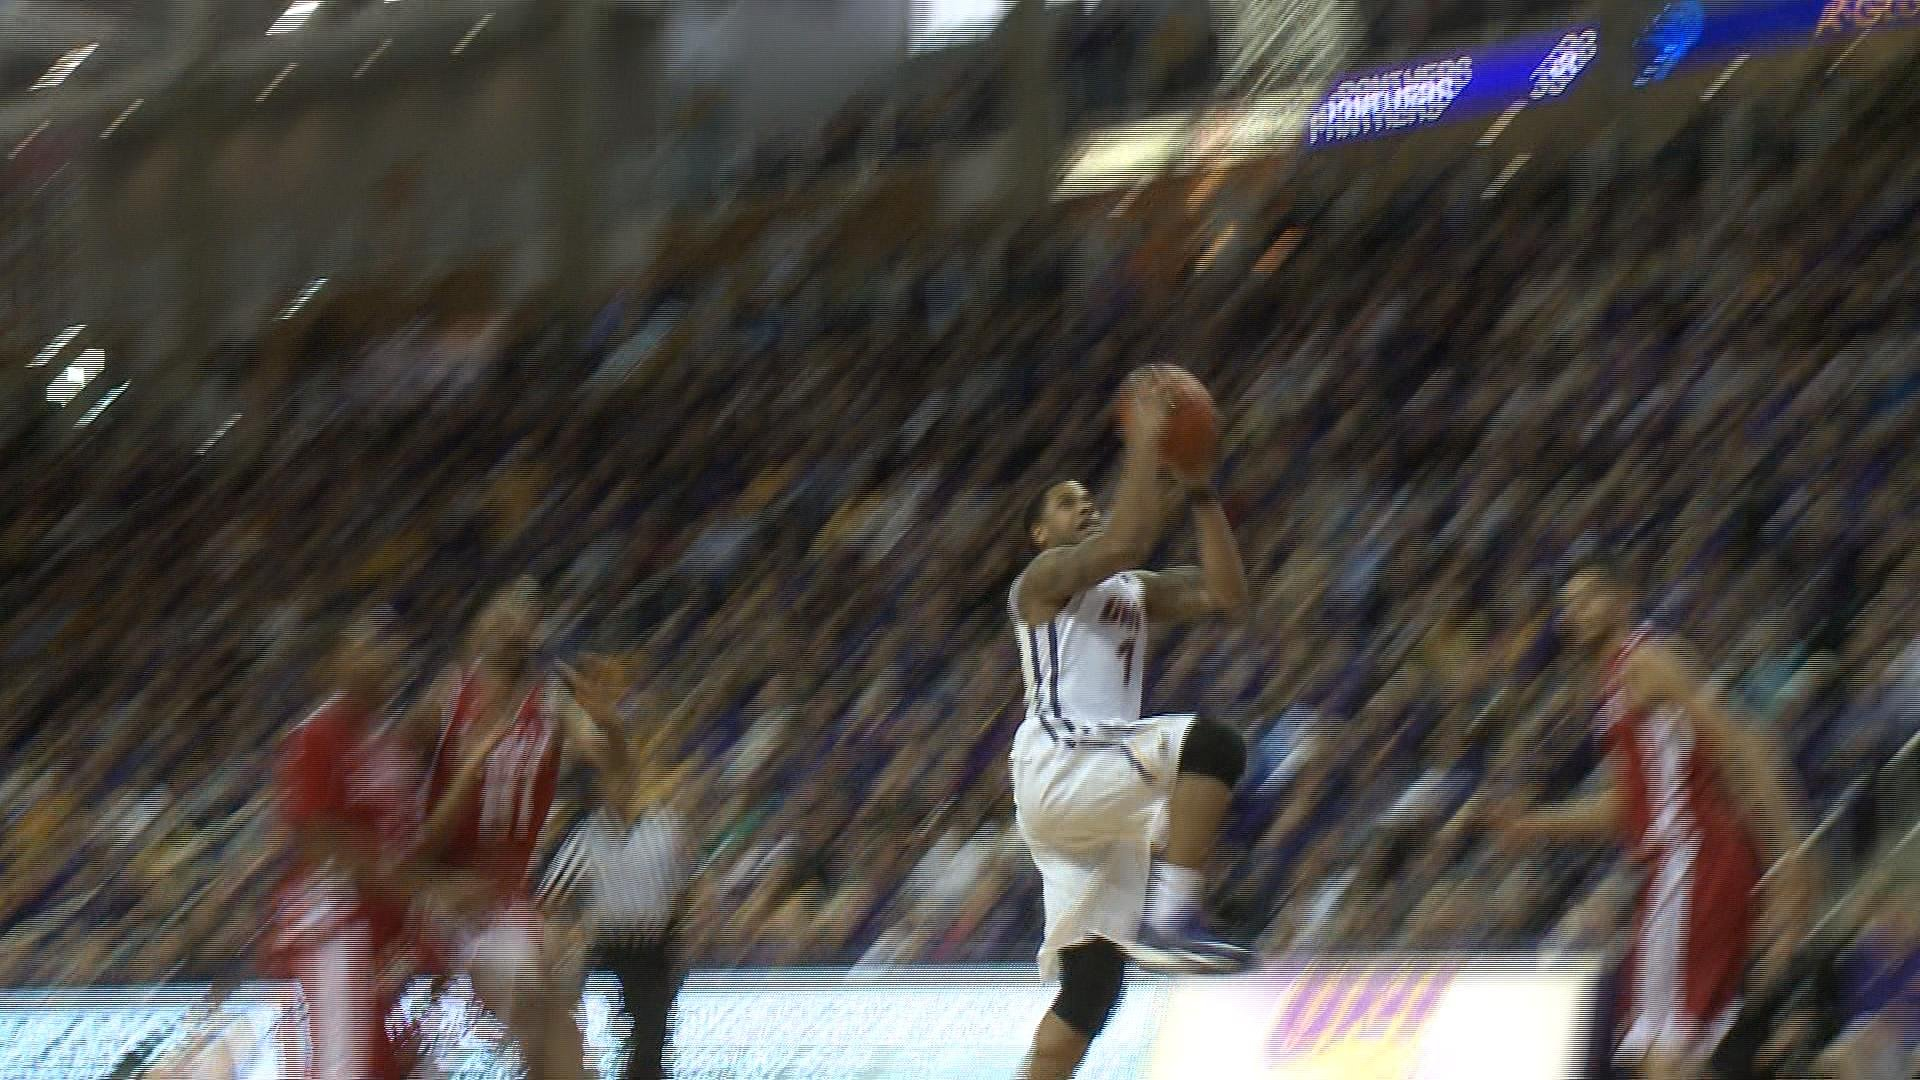 Deon Mitchell hits a lay-up during Saturday's game against Bradley. The Panthers won, 56-39.